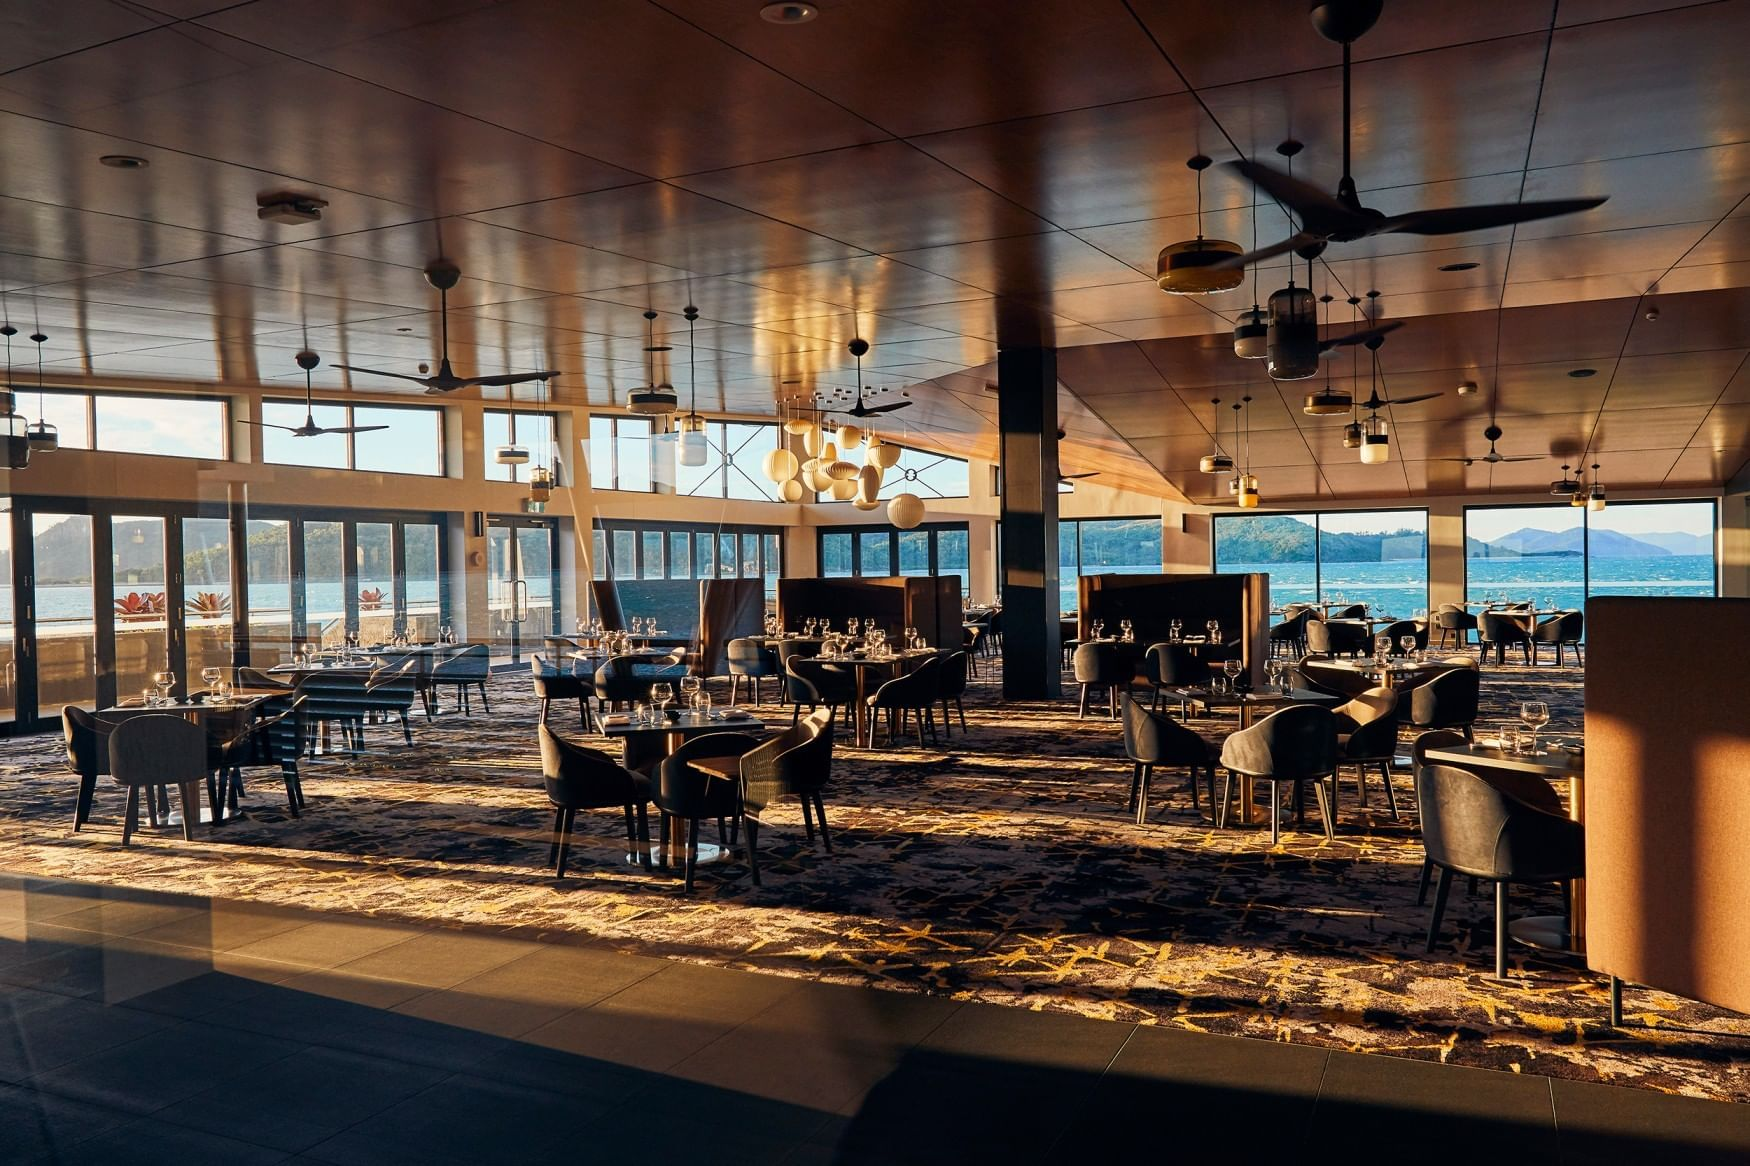 Infinity Restaurant with ocean view at Daydream Island Resort